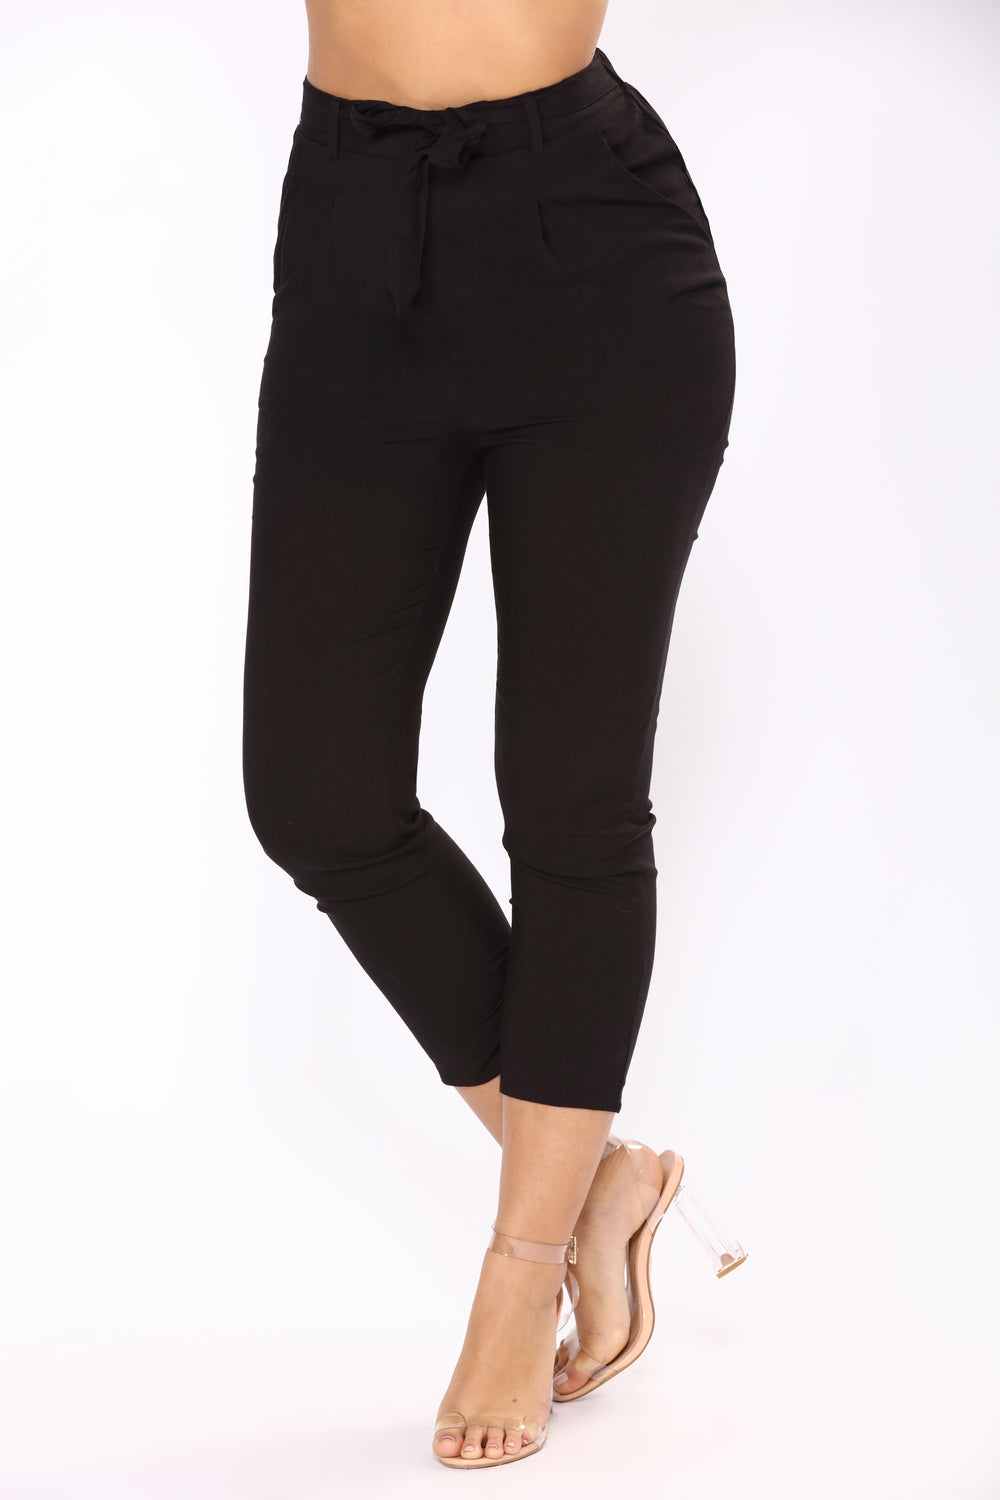 Work It Waist Tie Pants - Black